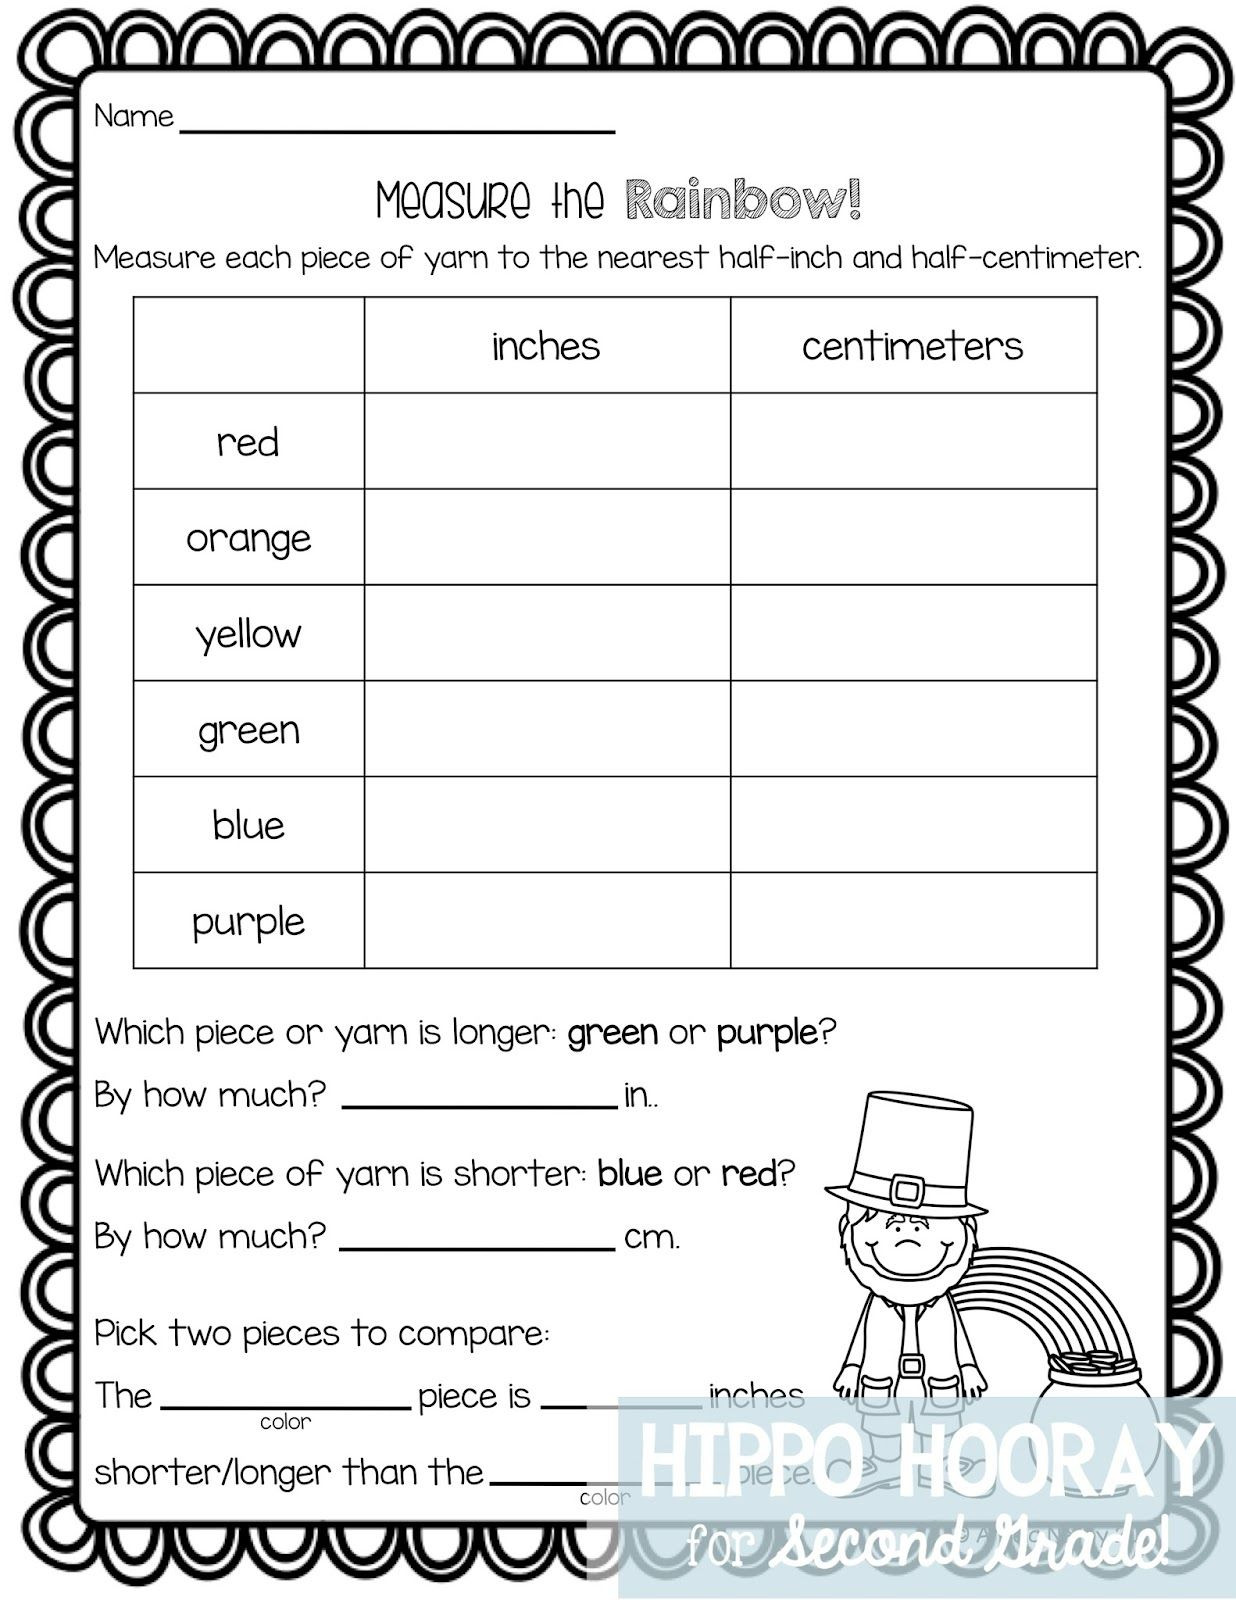 Measurement Worksheets for 2nd Grade St Patrick S Day Math Freebie